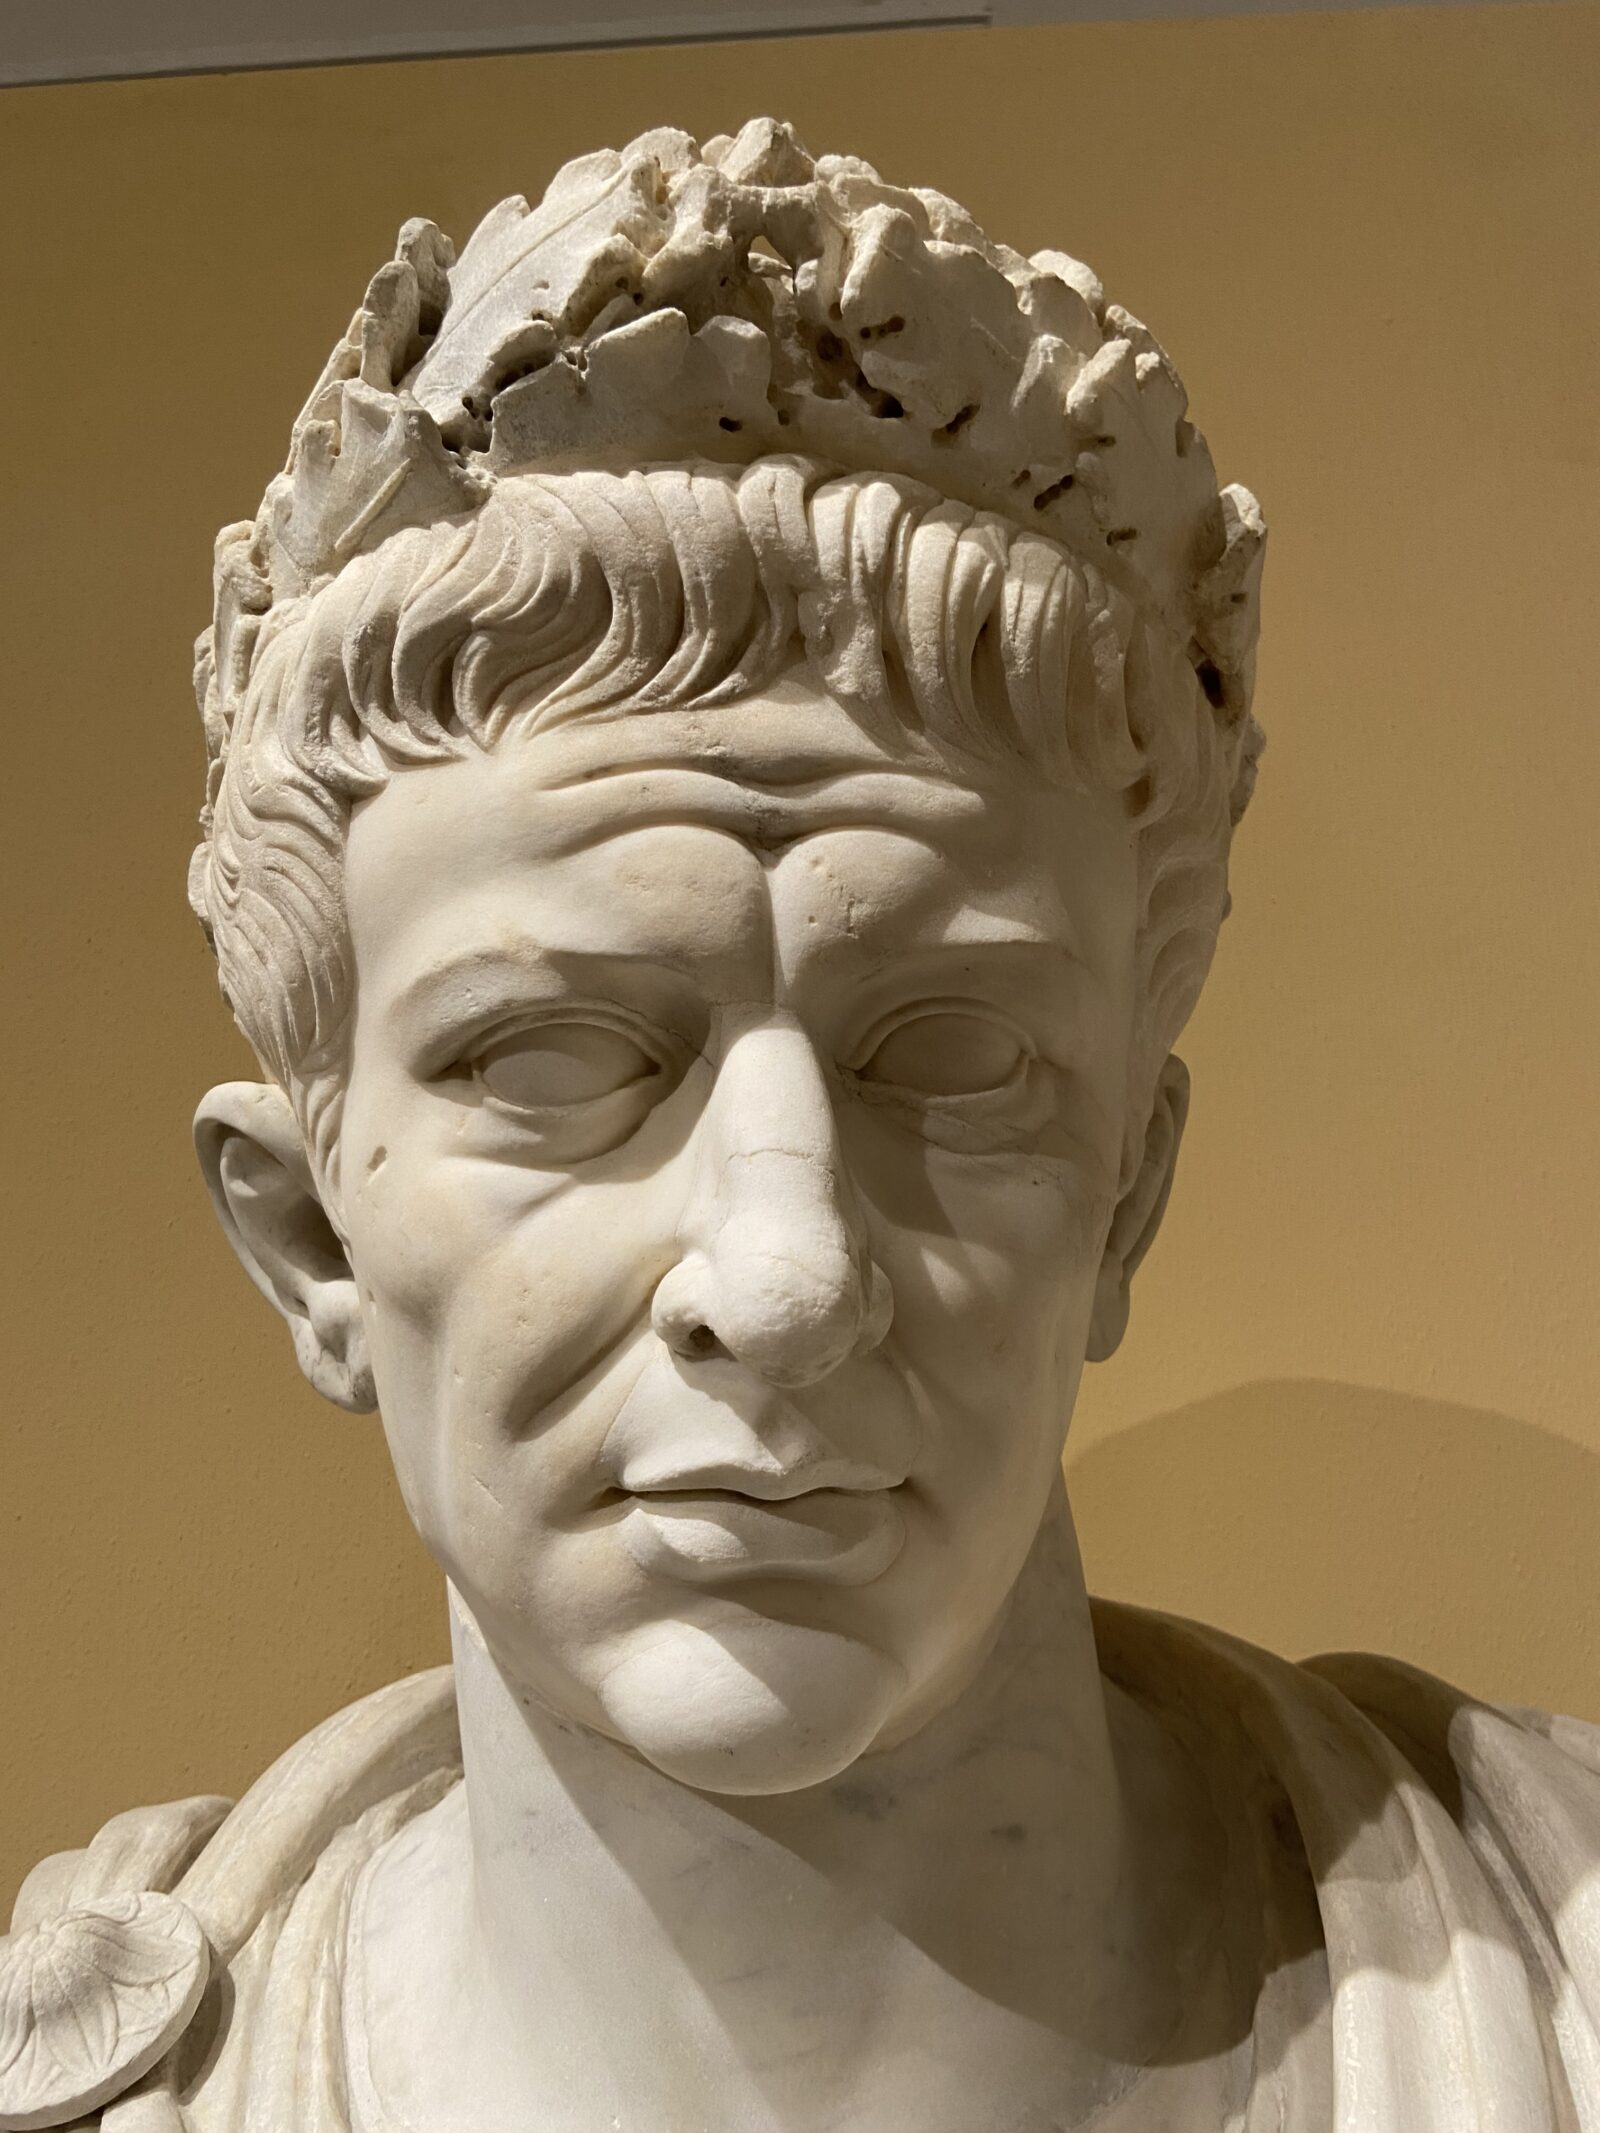 Emperor Claudius from the 1st century A.D.